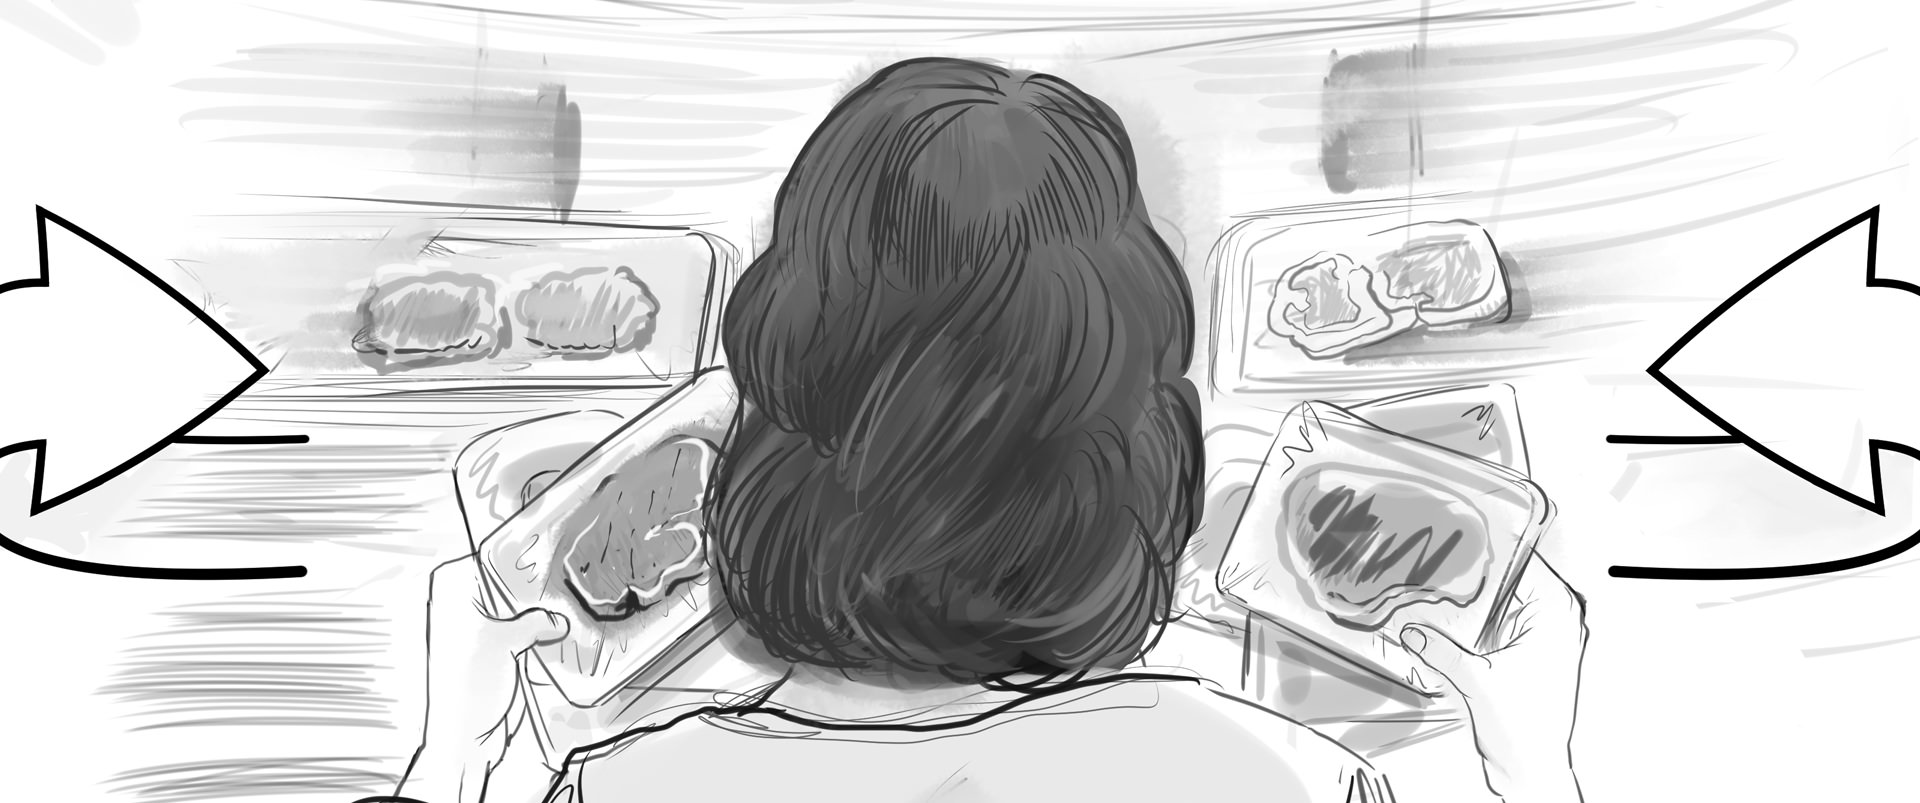 Lidl Vis TV Commercial storyboard 03